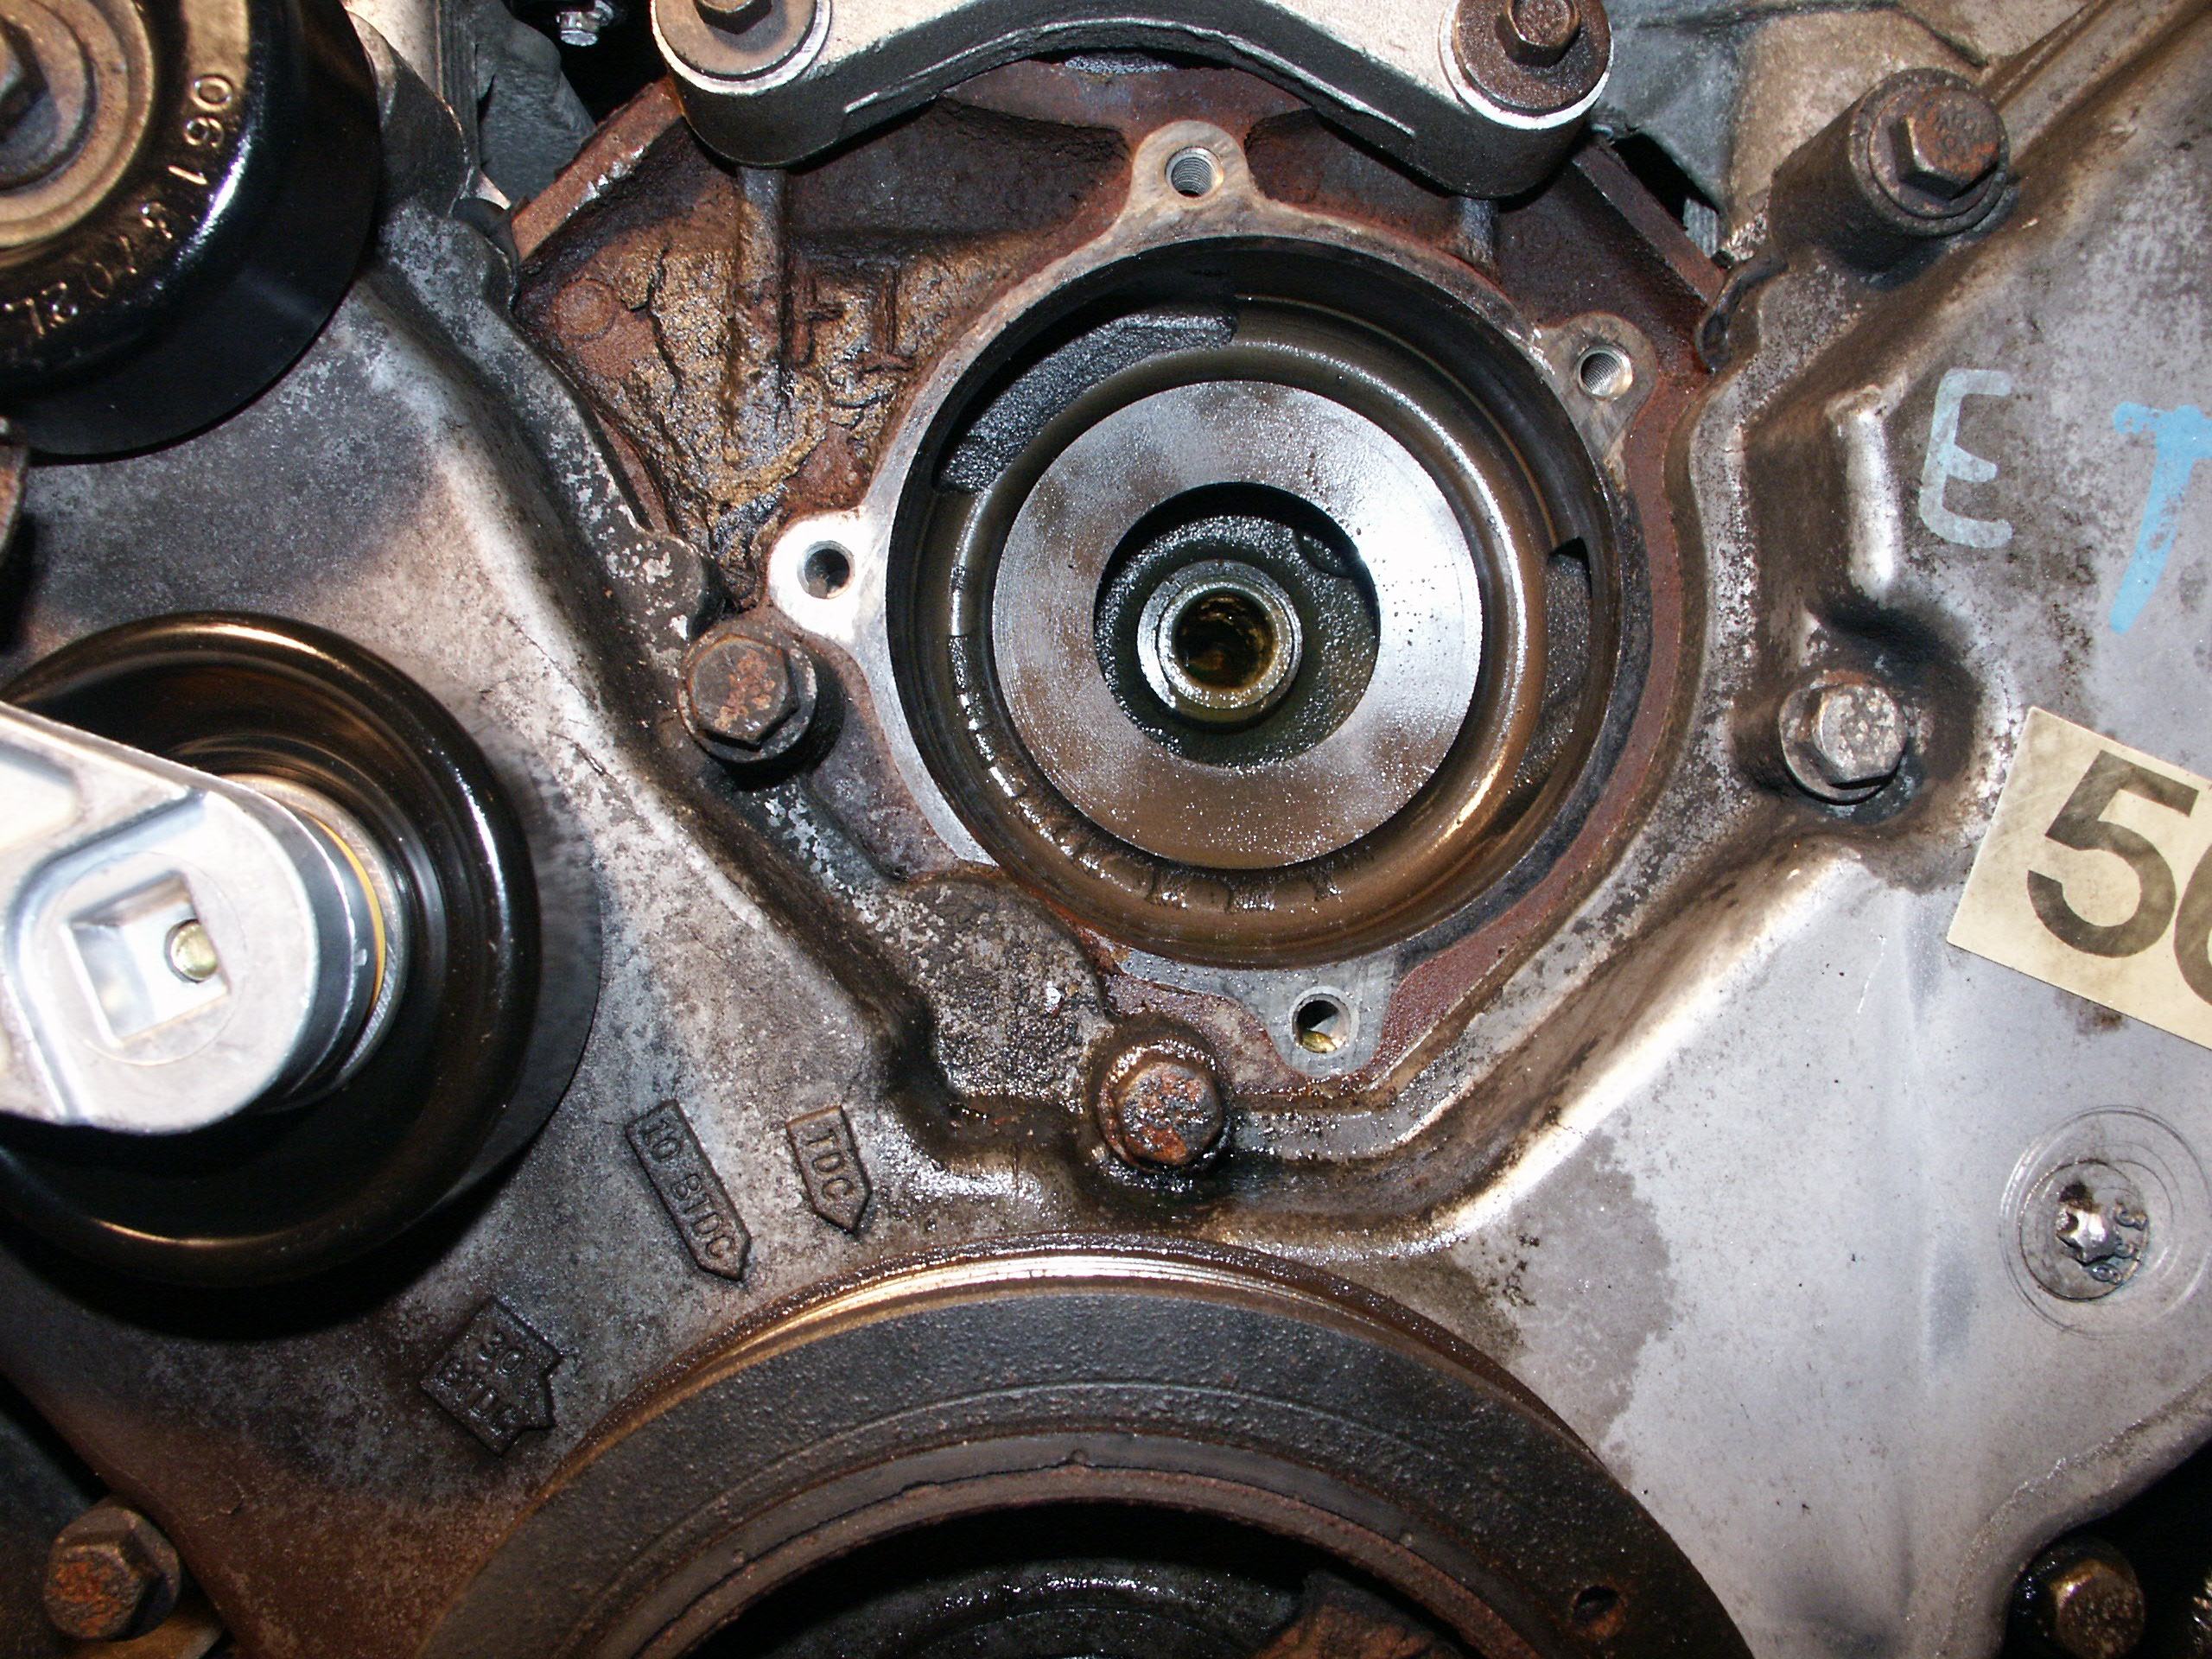 1998 Ford Crown Victoria Water Pump Replacement Engine Diagram This Particular Waterpump Came Out Relatively Easy Sometimes The Is Really Stuck In Block And One Needs To Use A Hammer Pound It